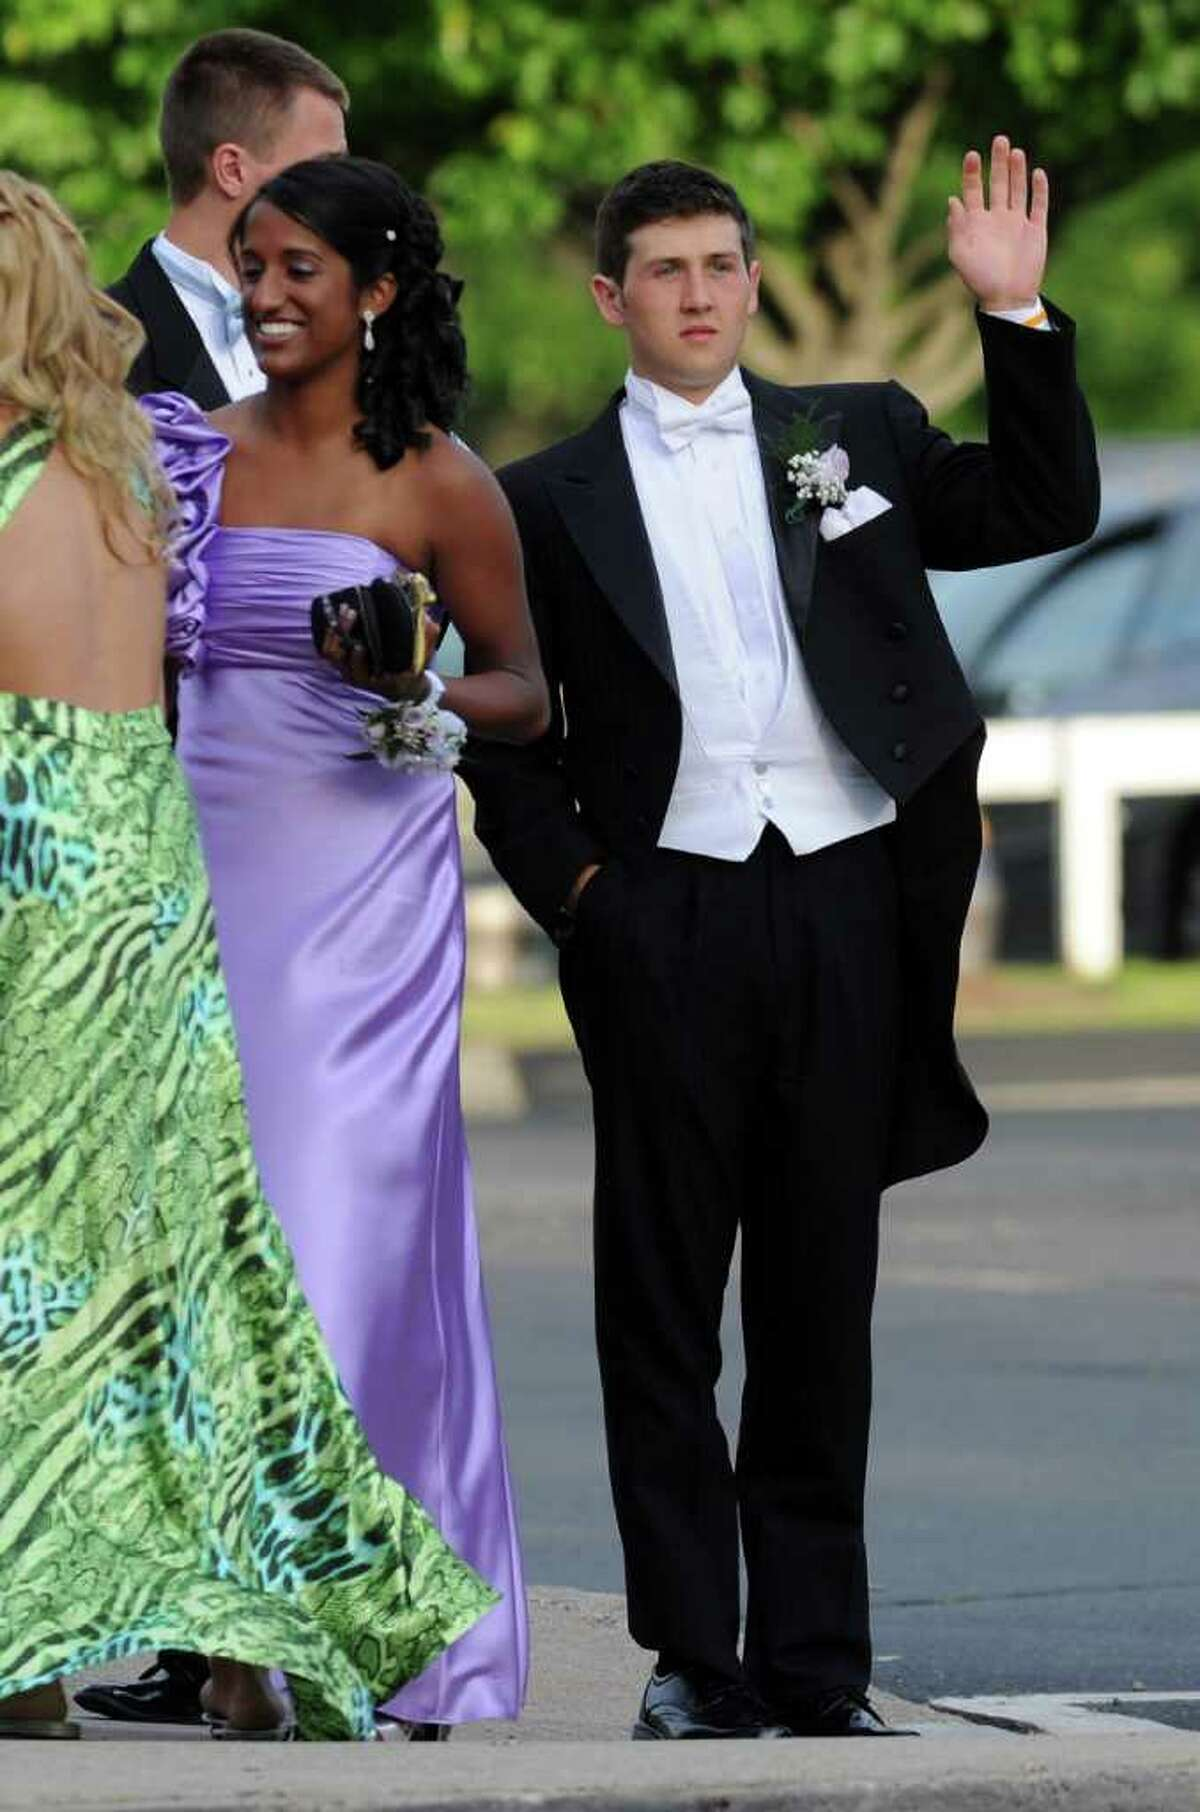 James Tate waves to the media as he and Sonali Rodrigues arrive at senior prom on Saturday, June 4, 2011. The prom was held at Oakdale Theater in Wallingford.